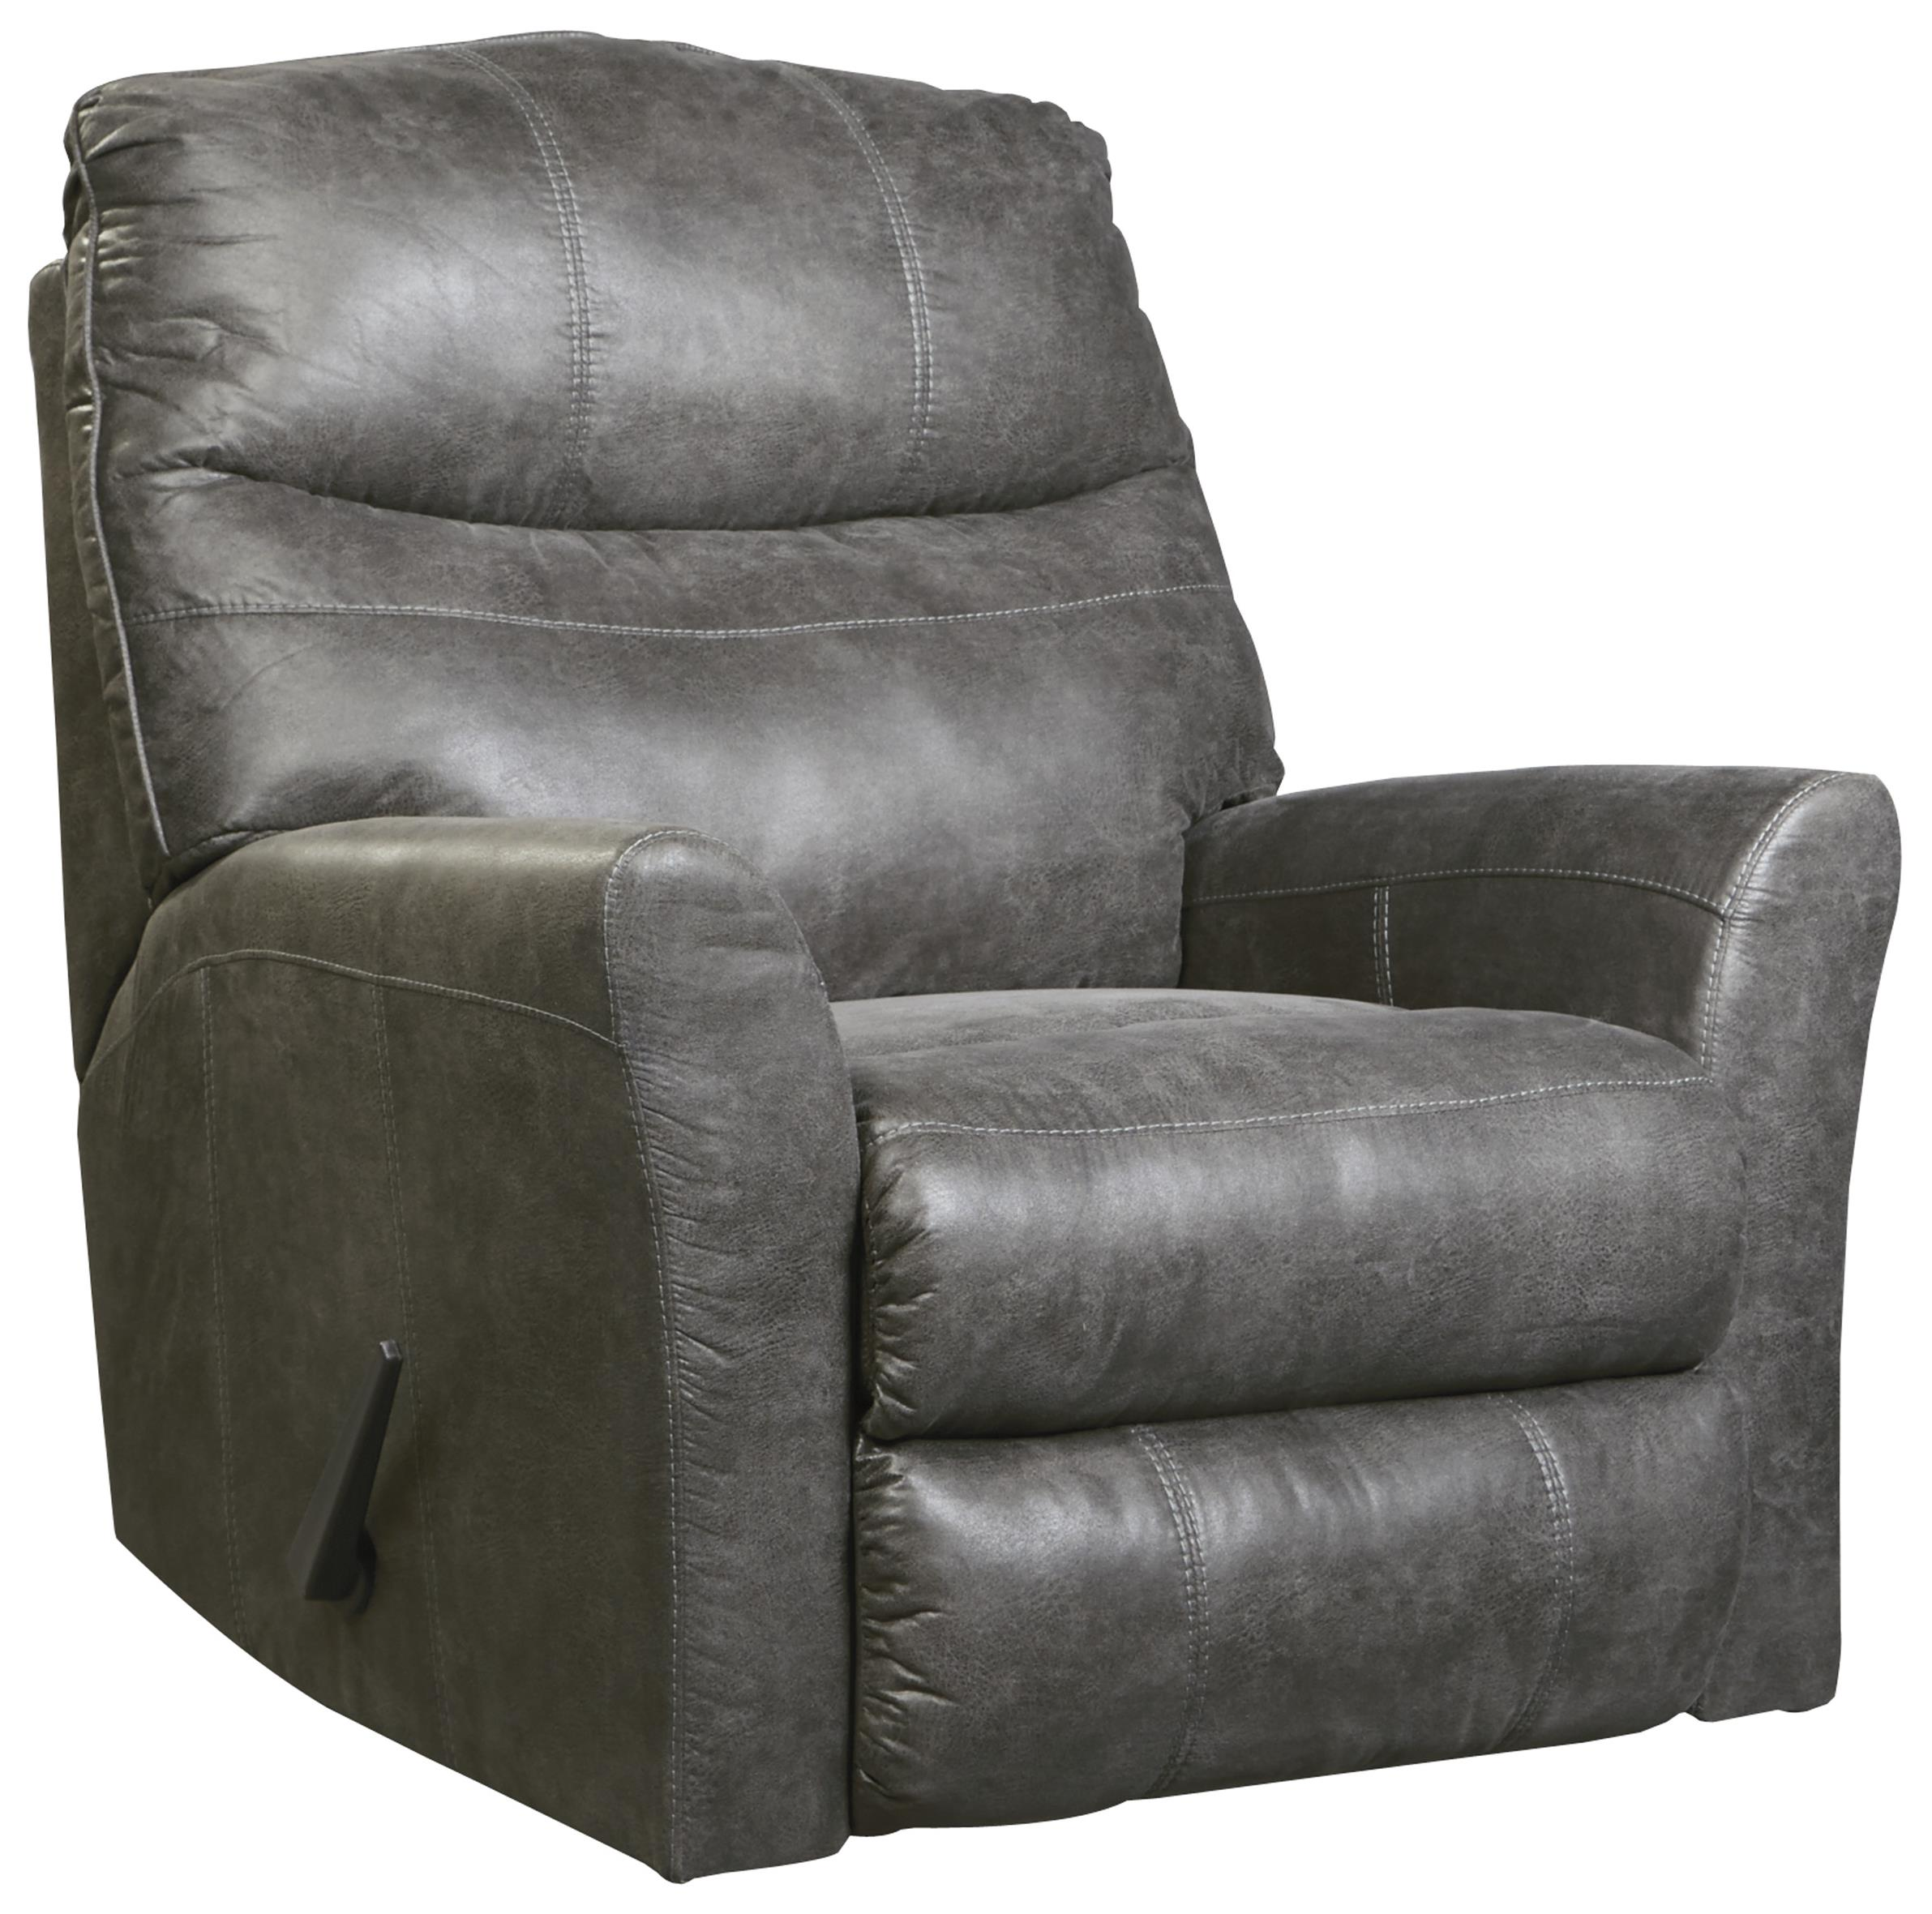 Signature Design by Ashley Tullos Rocker Recliner - Item Number: 6920225